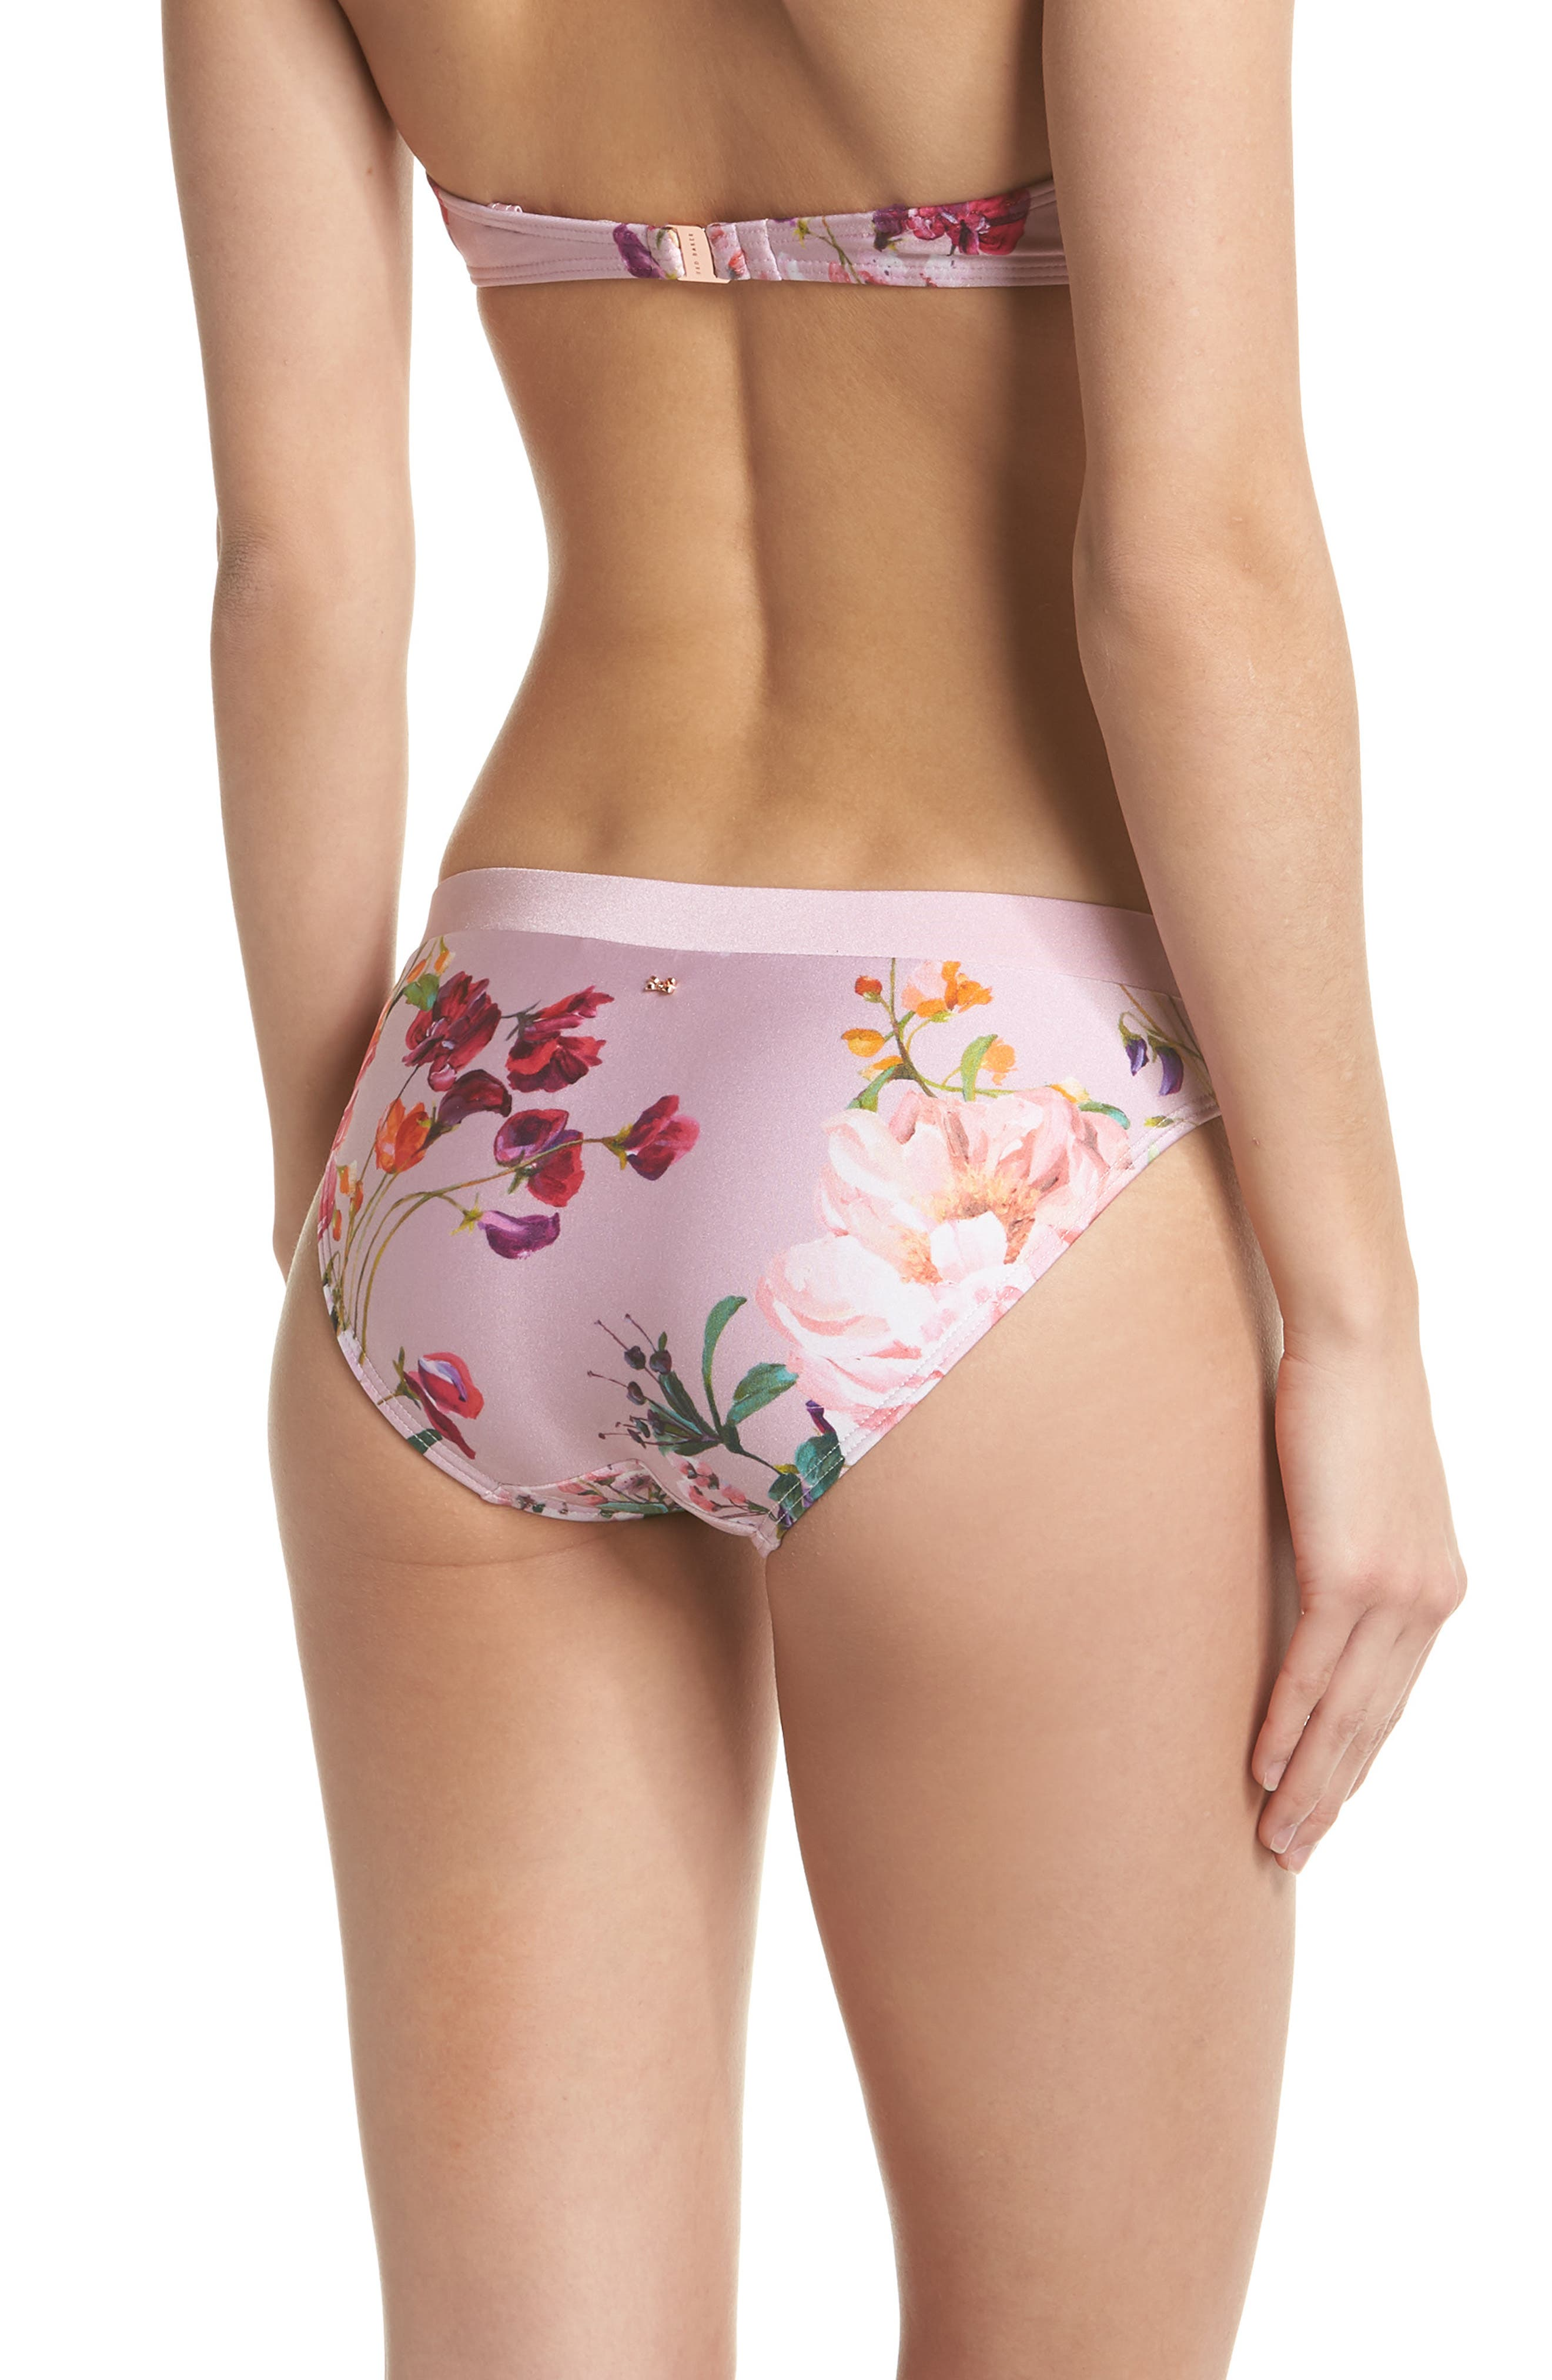 Serenity Floral Bikini Bottoms,                             Alternate thumbnail 2, color,                             Pale Pink